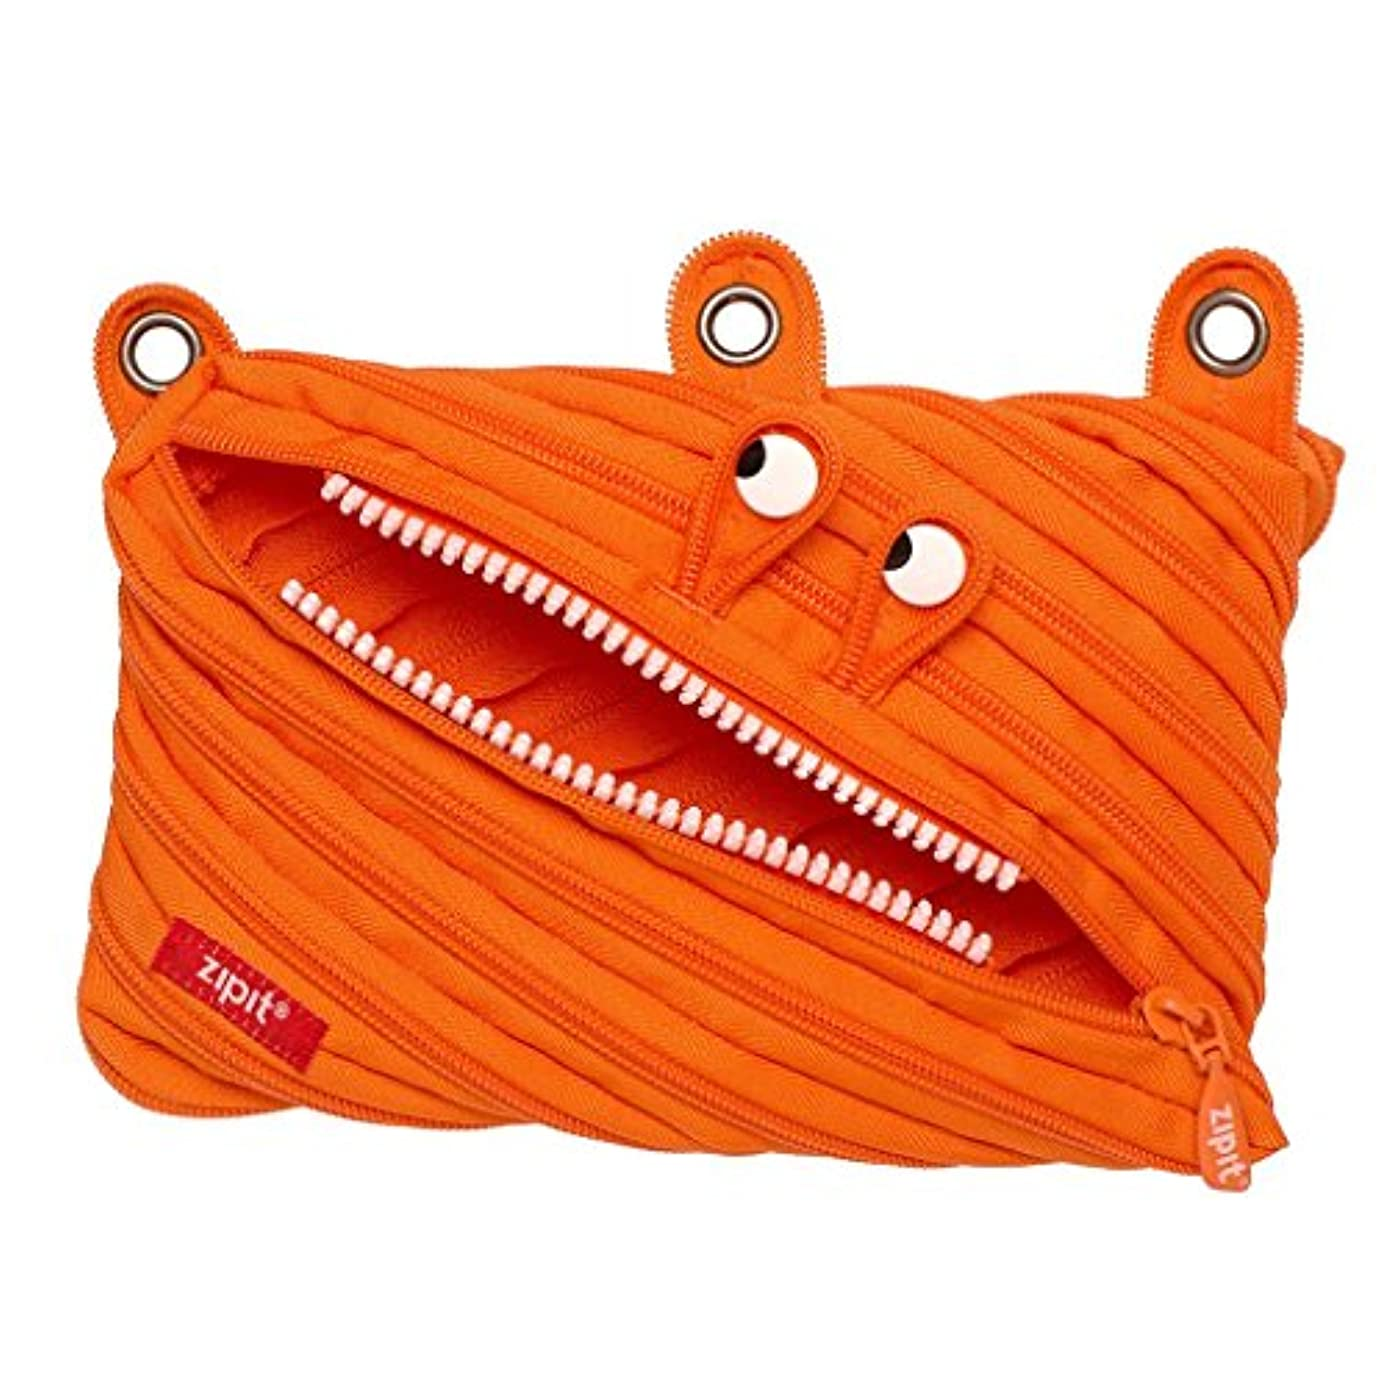 ZIPIT Monster 3-Ring Pencil Case, Orange pwh4104676